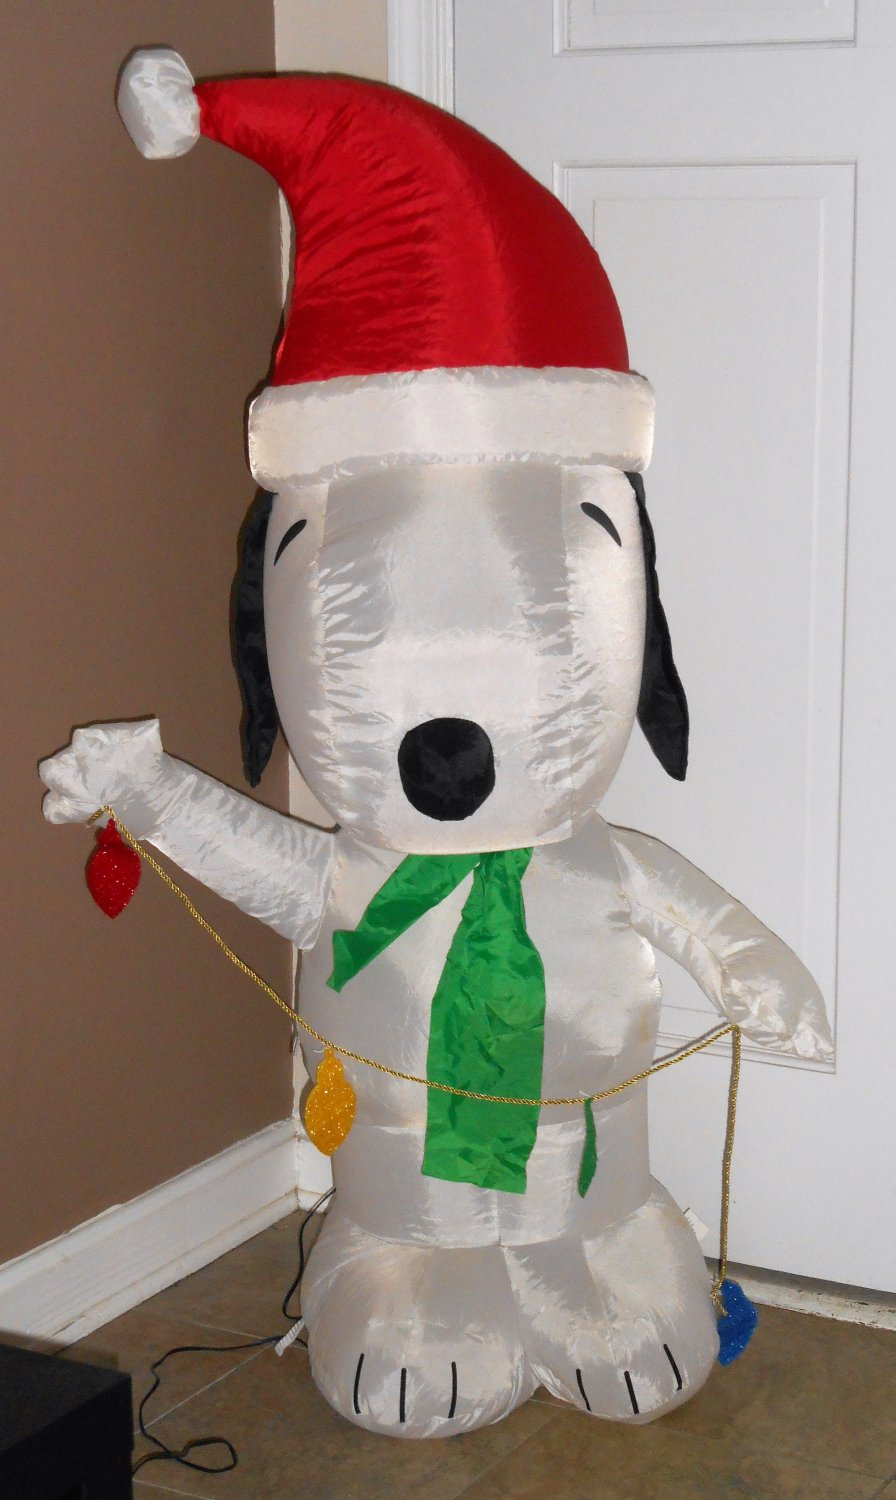 santa snoopy peanuts gang christmas airblown fan inflatable holiday lights gemmy fan 4 feet tall